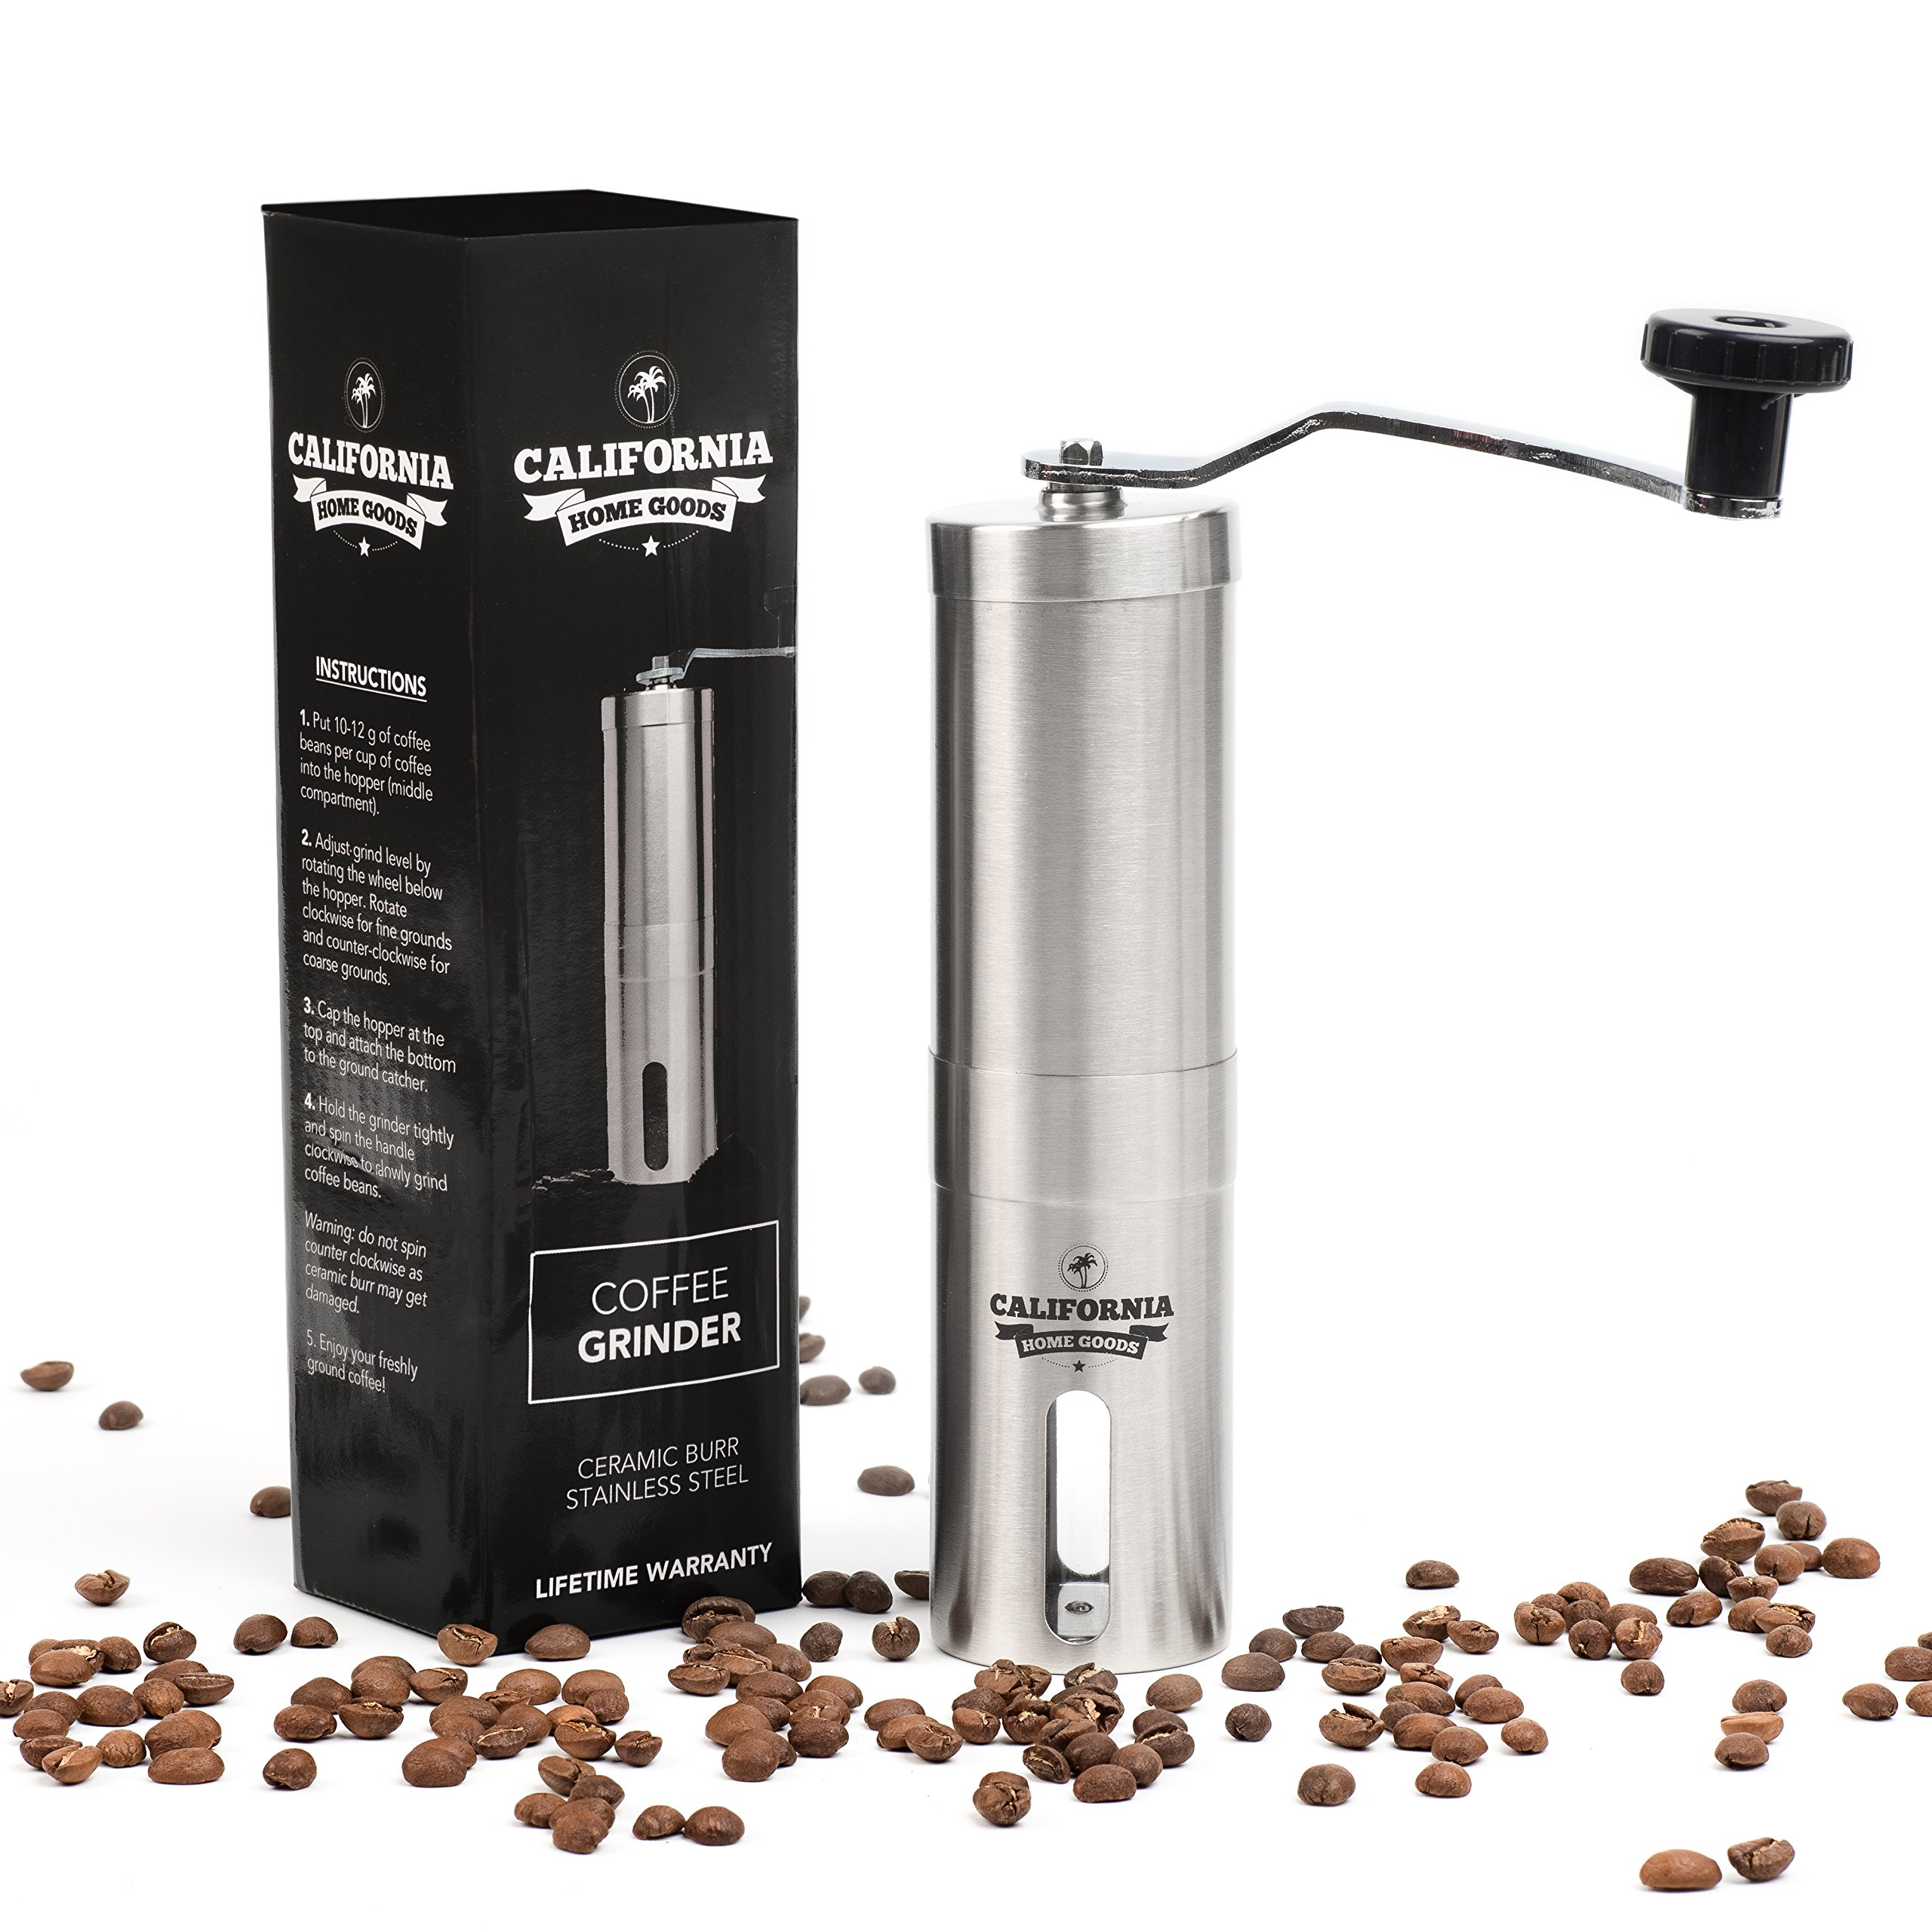 Premium Ceramic Burr Coffee Grinder - Portable Stainless Steel Coffee Mill by California Home Goods - Aeropress & Espresso Compatible